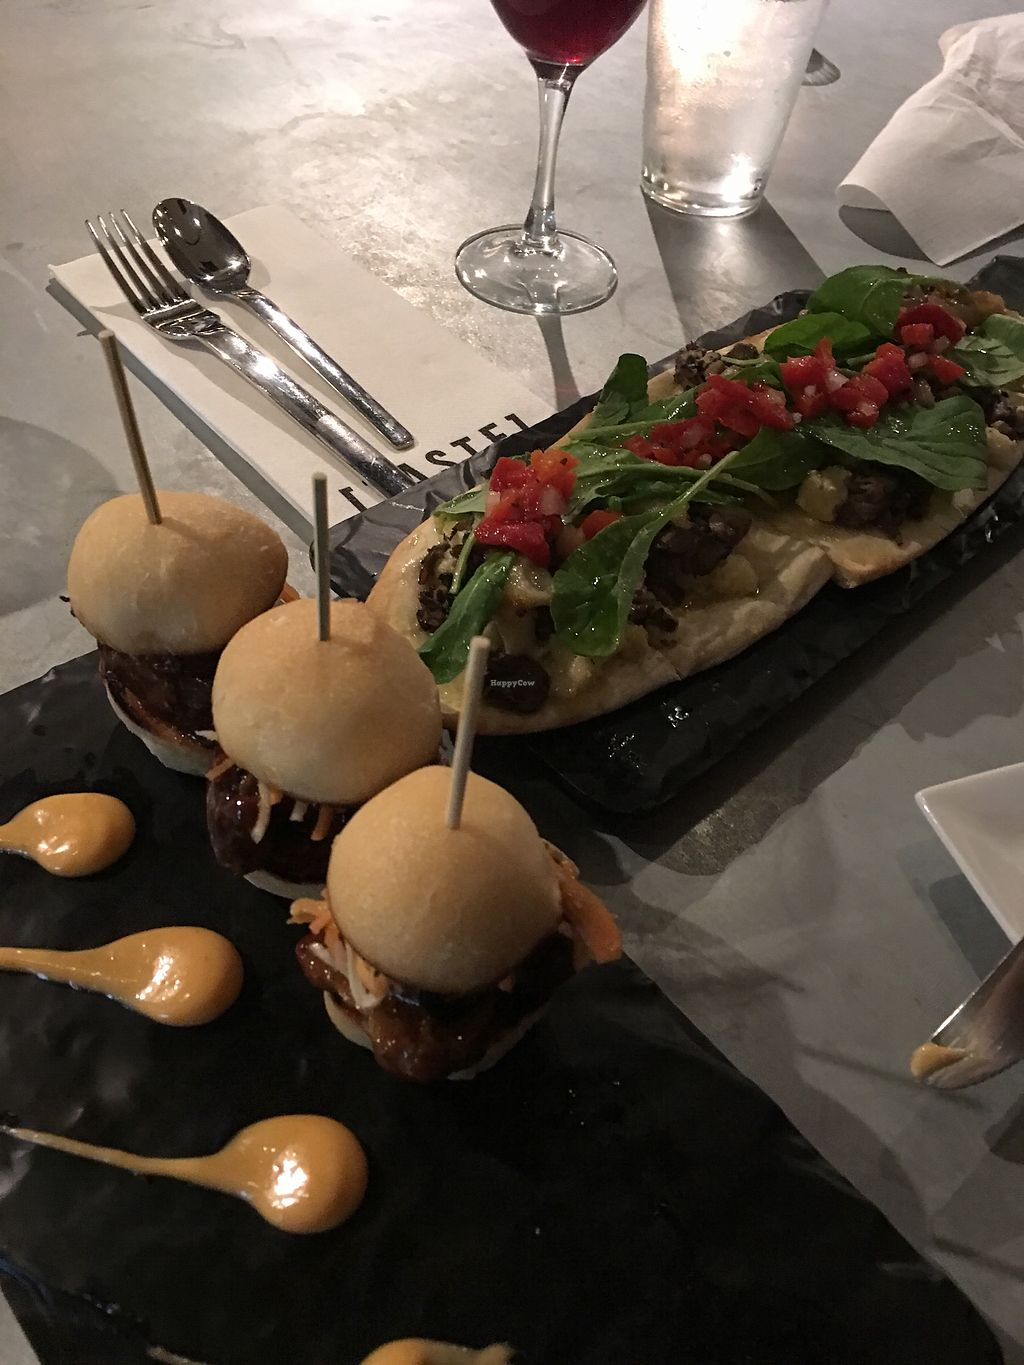 """Photo of Taste - Sand Castle Winery  by <a href=""""/members/profile/JackiN"""">JackiN</a> <br/>Short Rib Sliders and Mushroom Flat <br/> November 4, 2017  - <a href='/contact/abuse/image/93182/321845'>Report</a>"""